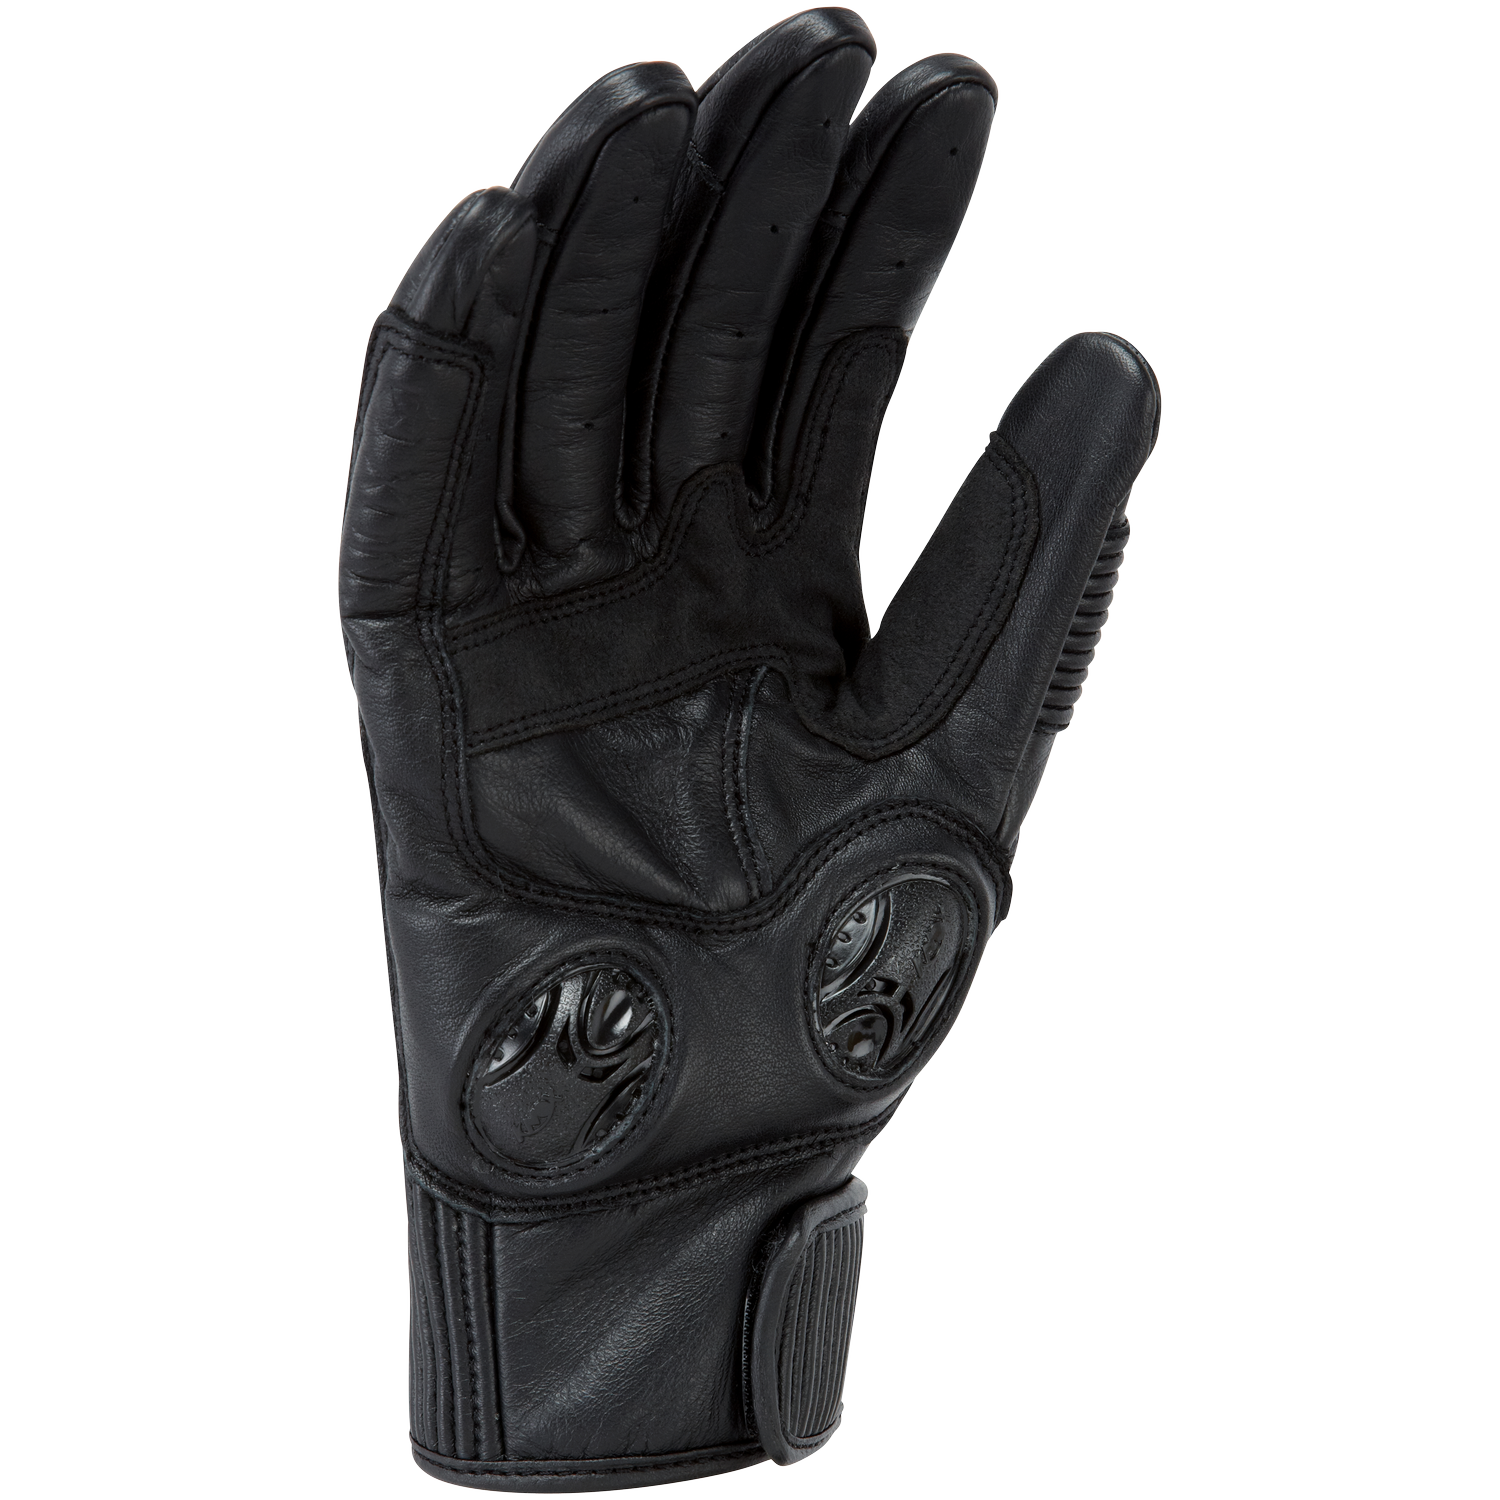 KNOX Hanbury motorcycle glove